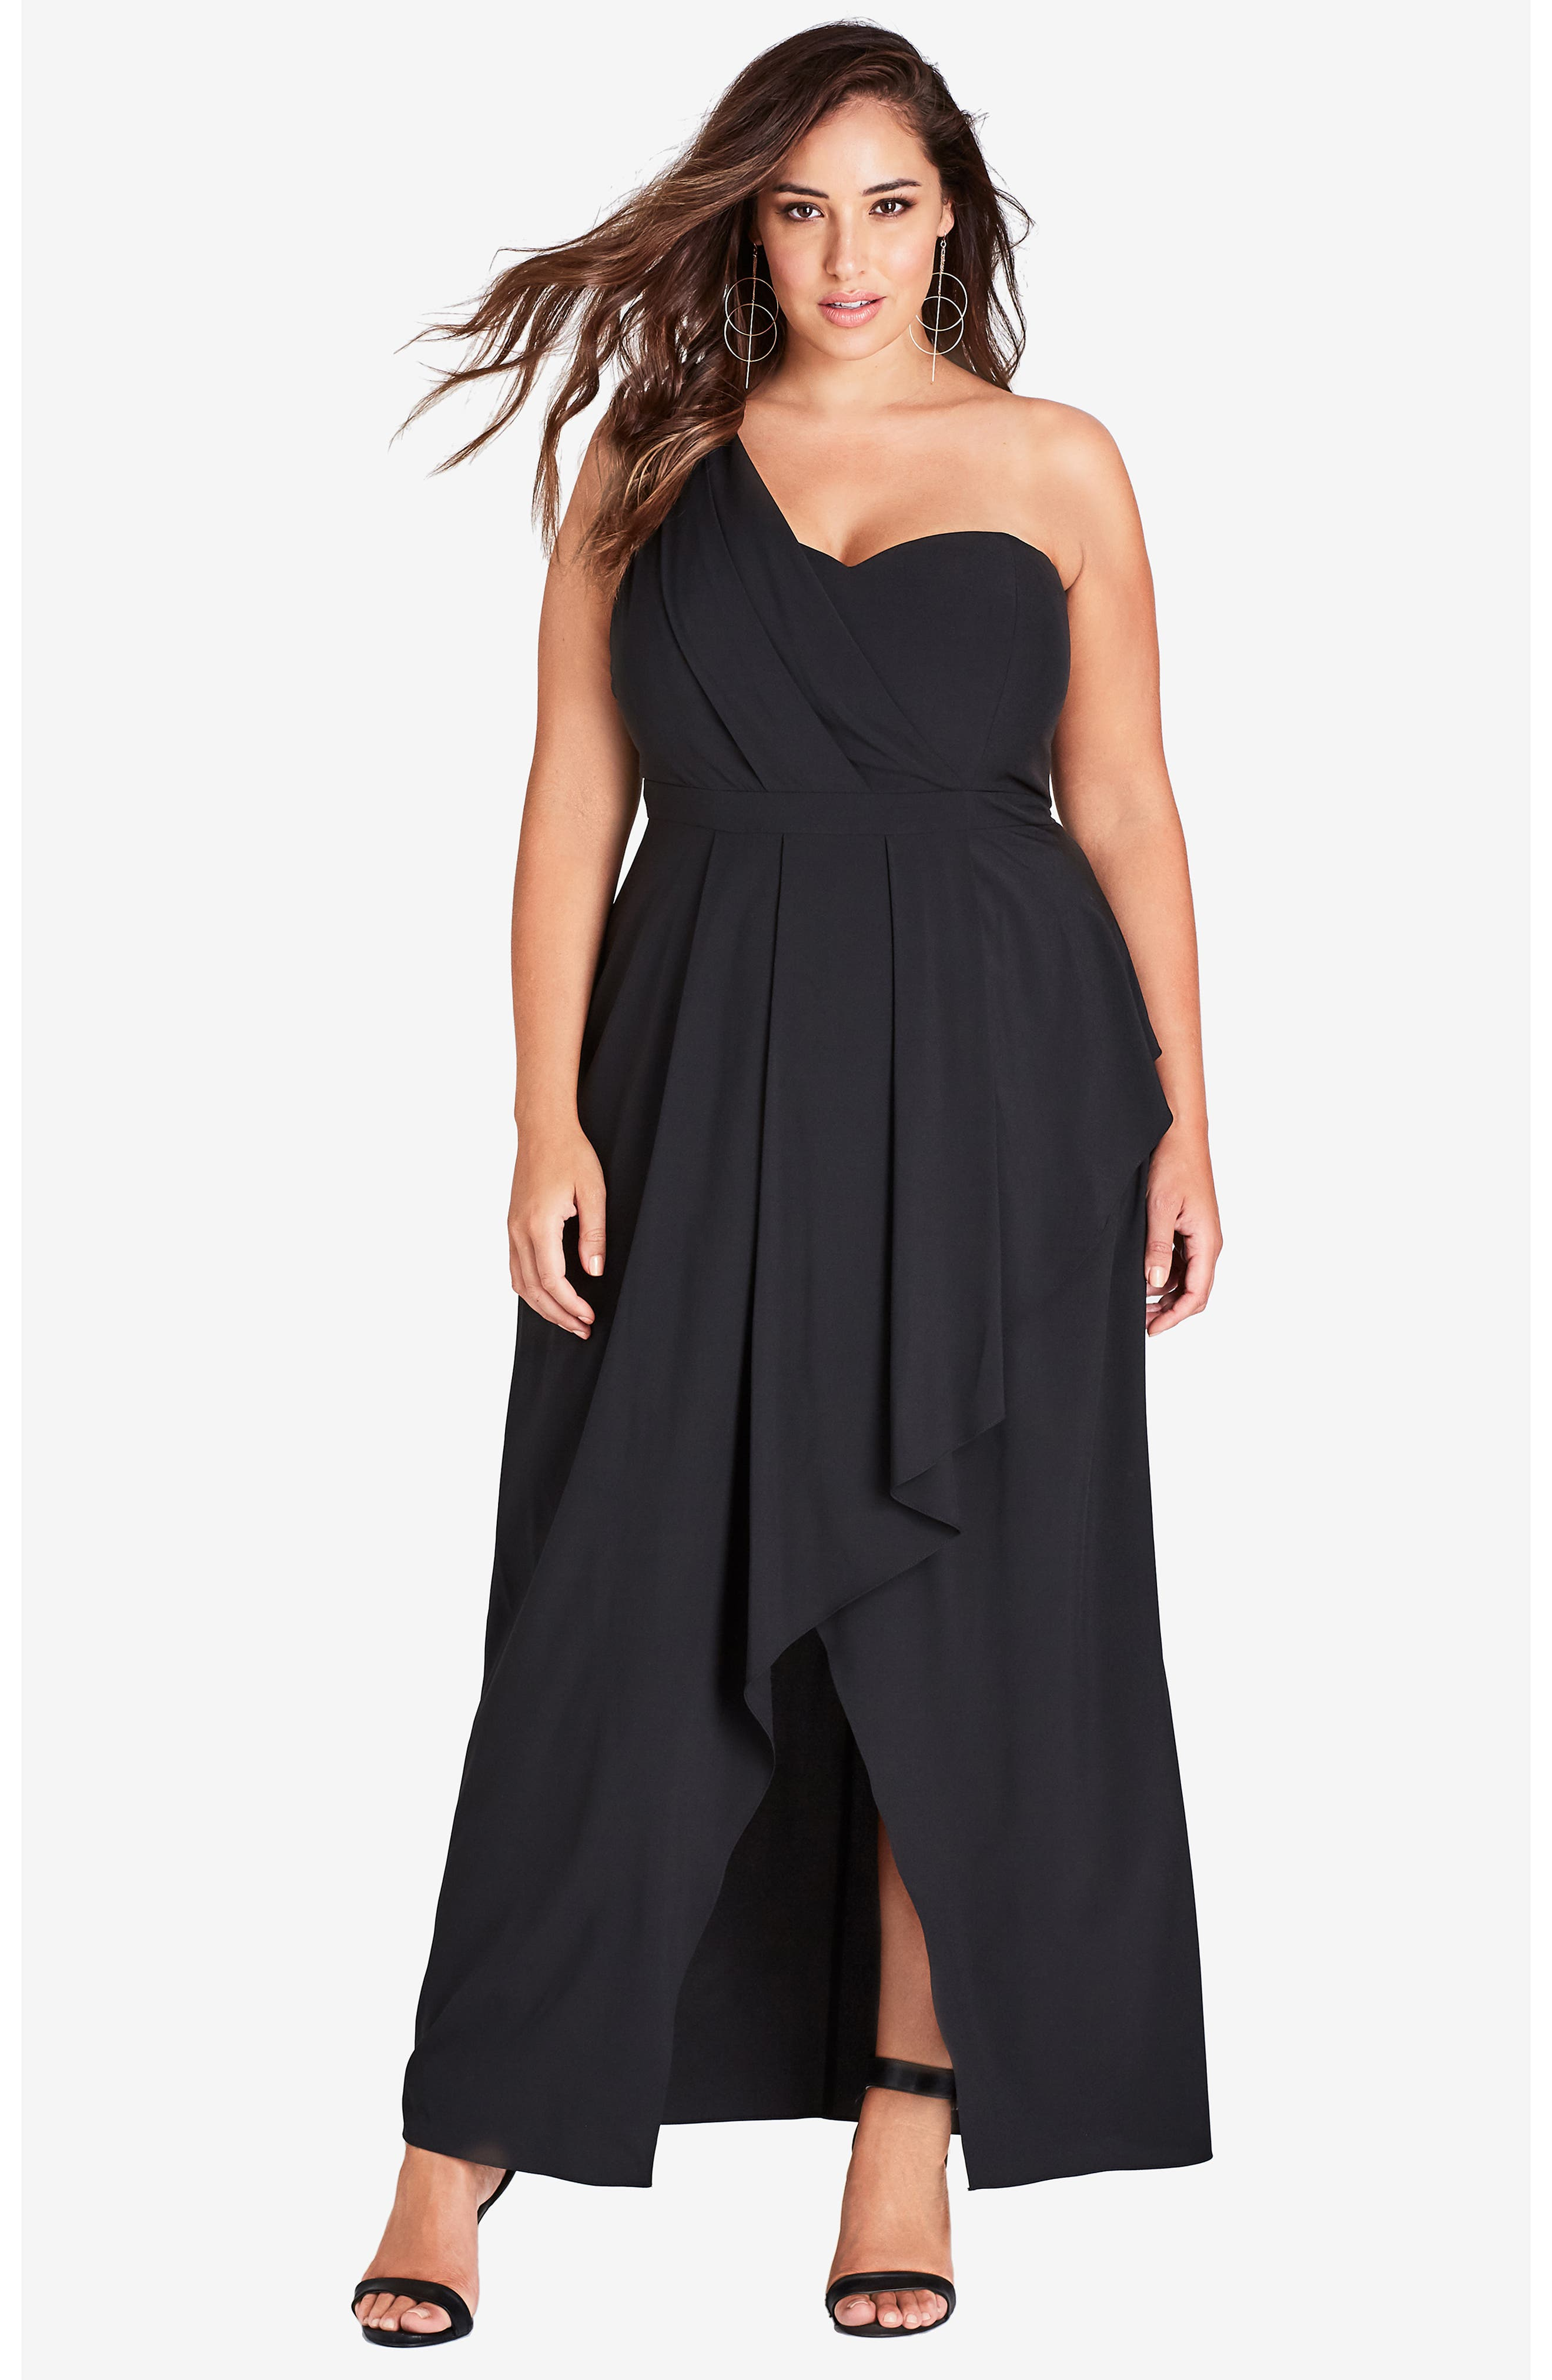 Allure One-Shoulder Maxi Dress,                             Alternate thumbnail 6, color,                             BLACK